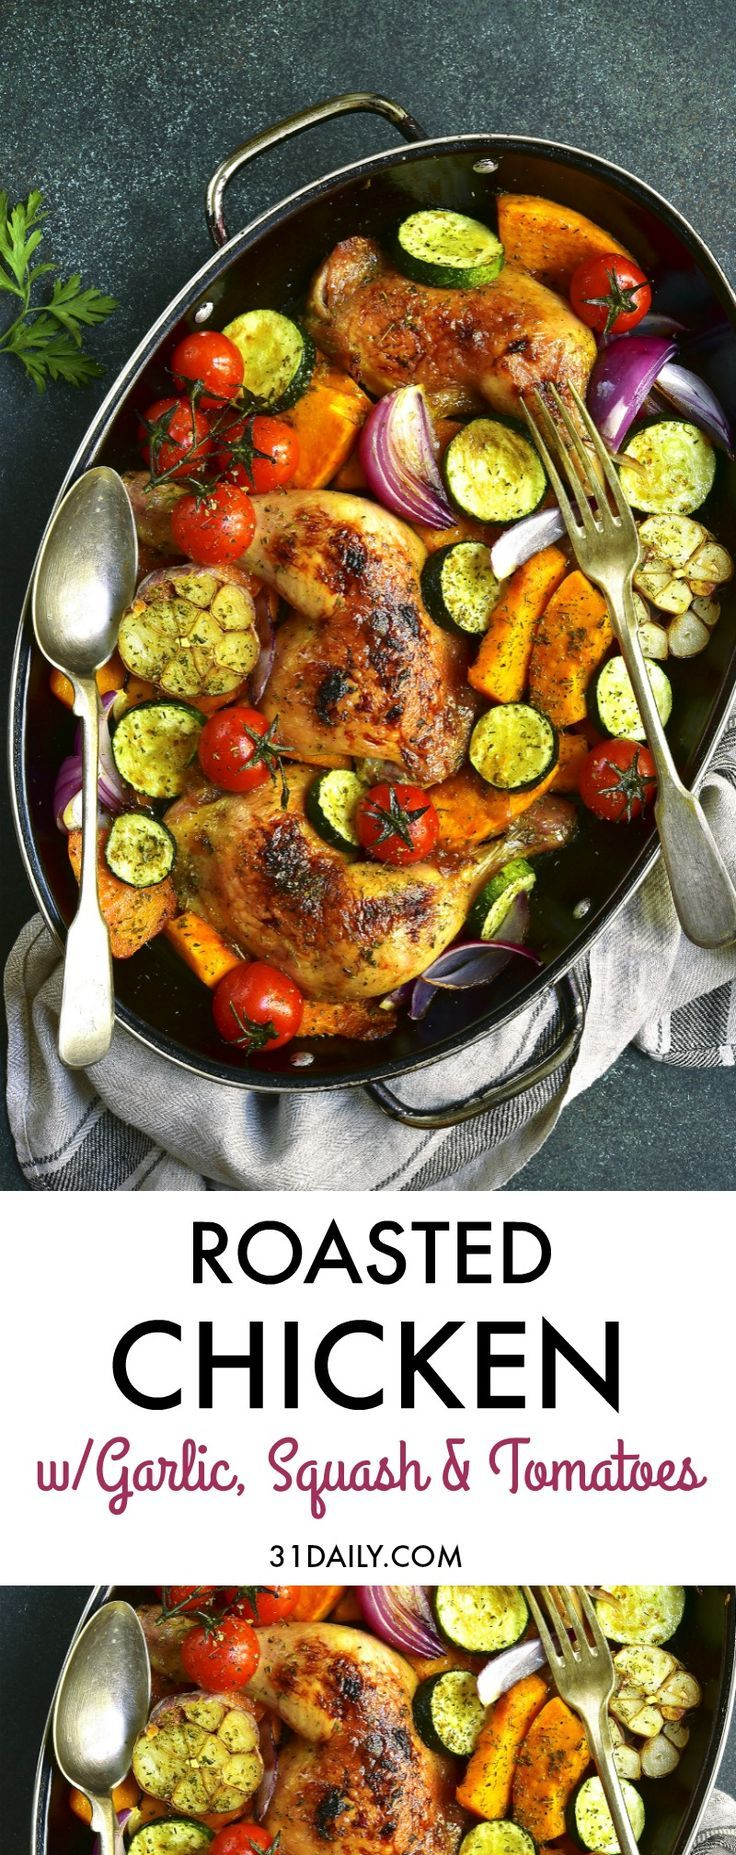 Roasted Chicken Hindquarters with Garlic, Squash and Tomatoes | 31Daily.com